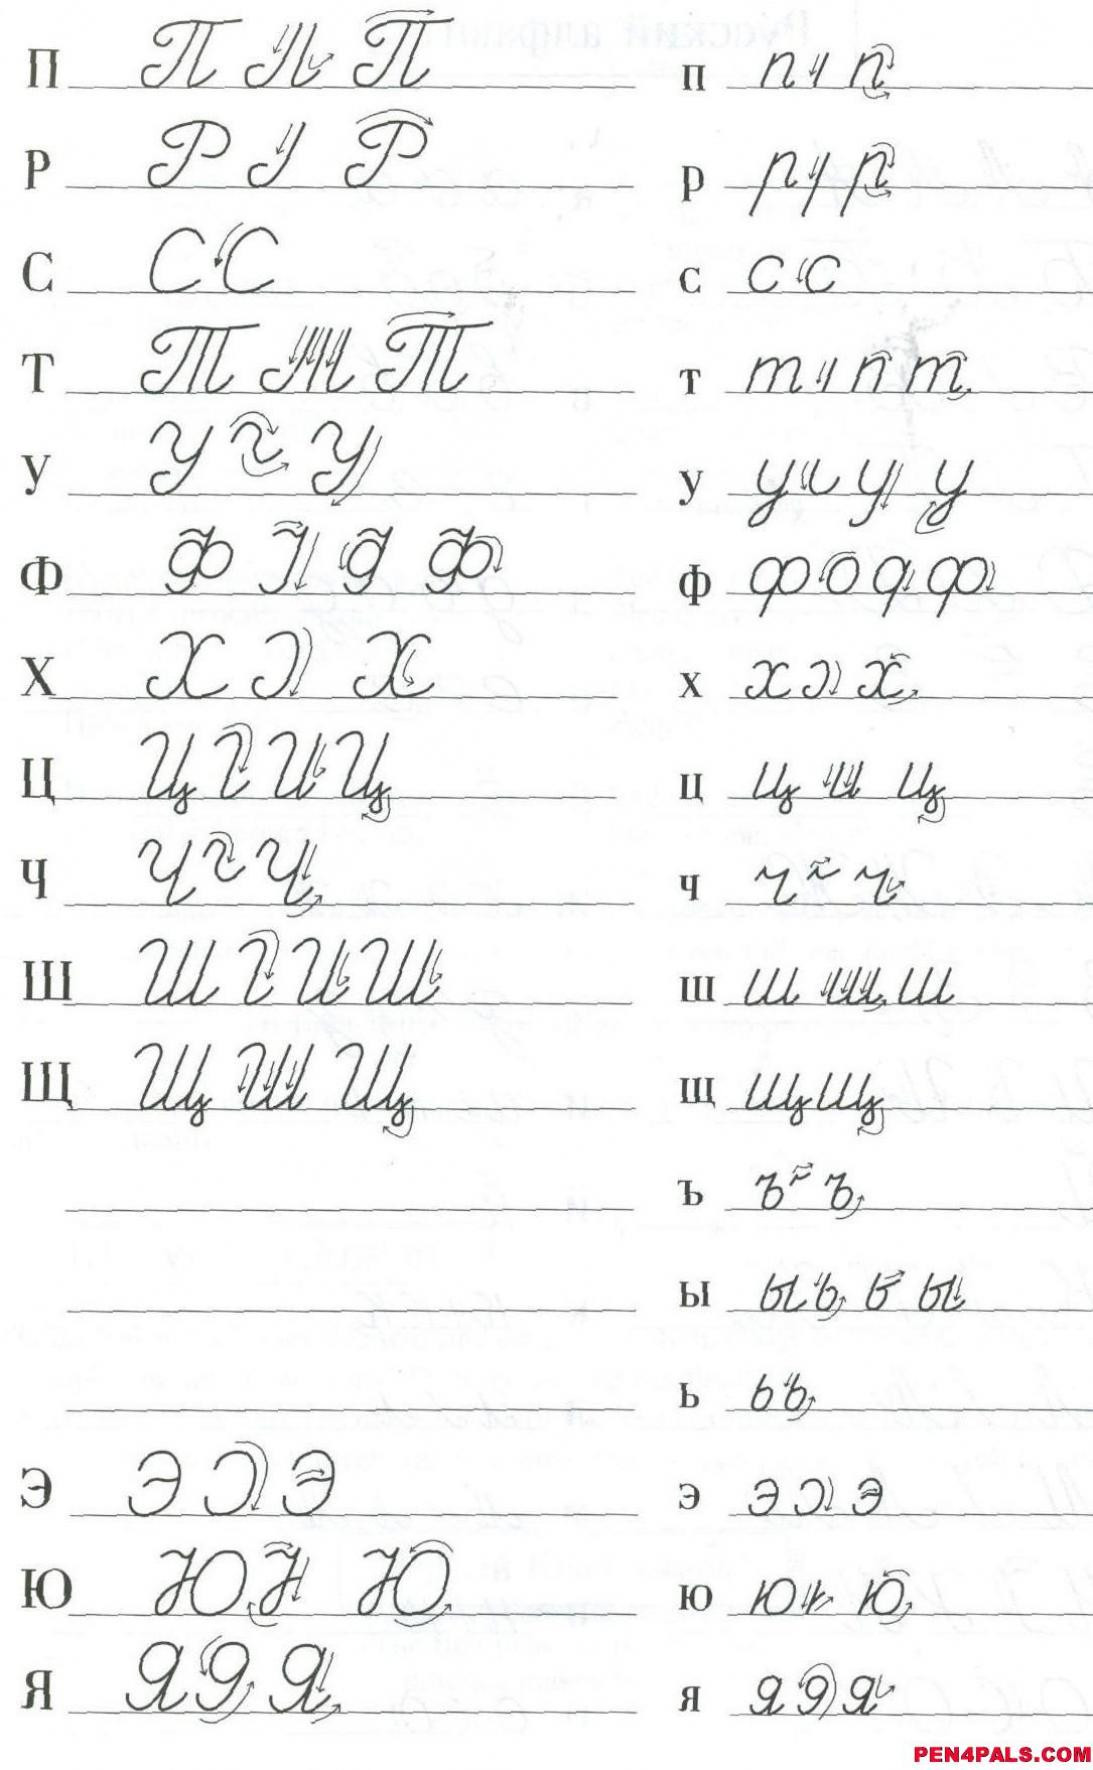 2nd Grade Handwriting Worksheets Pdf Math Worksheet Math Worksheet Improve Handwriting